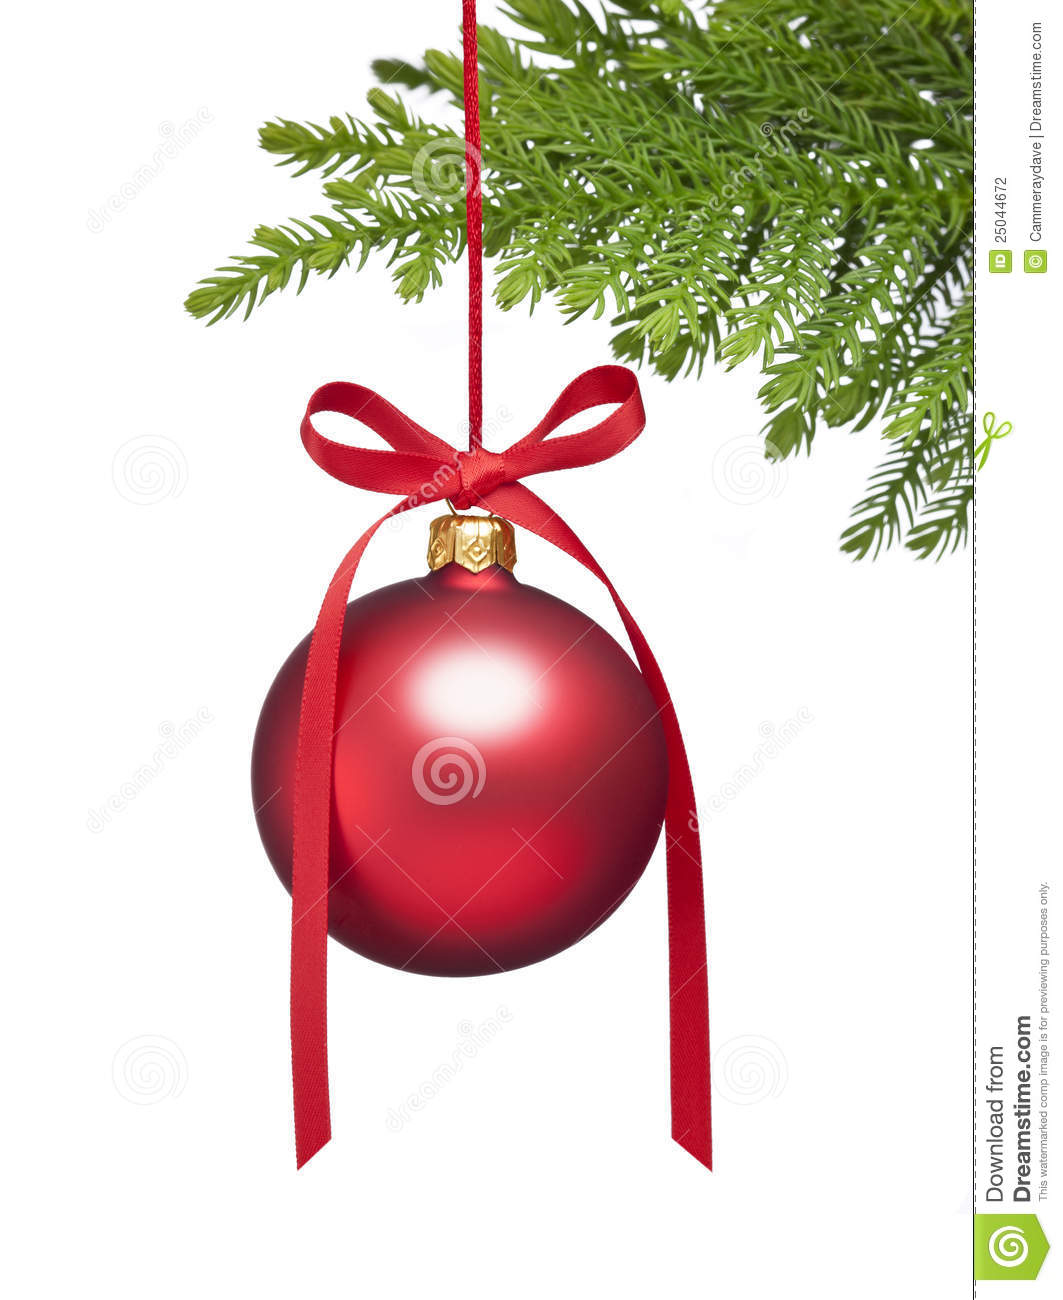 Christmas Tree Ornament Background Stock Photography - Image: 25044672